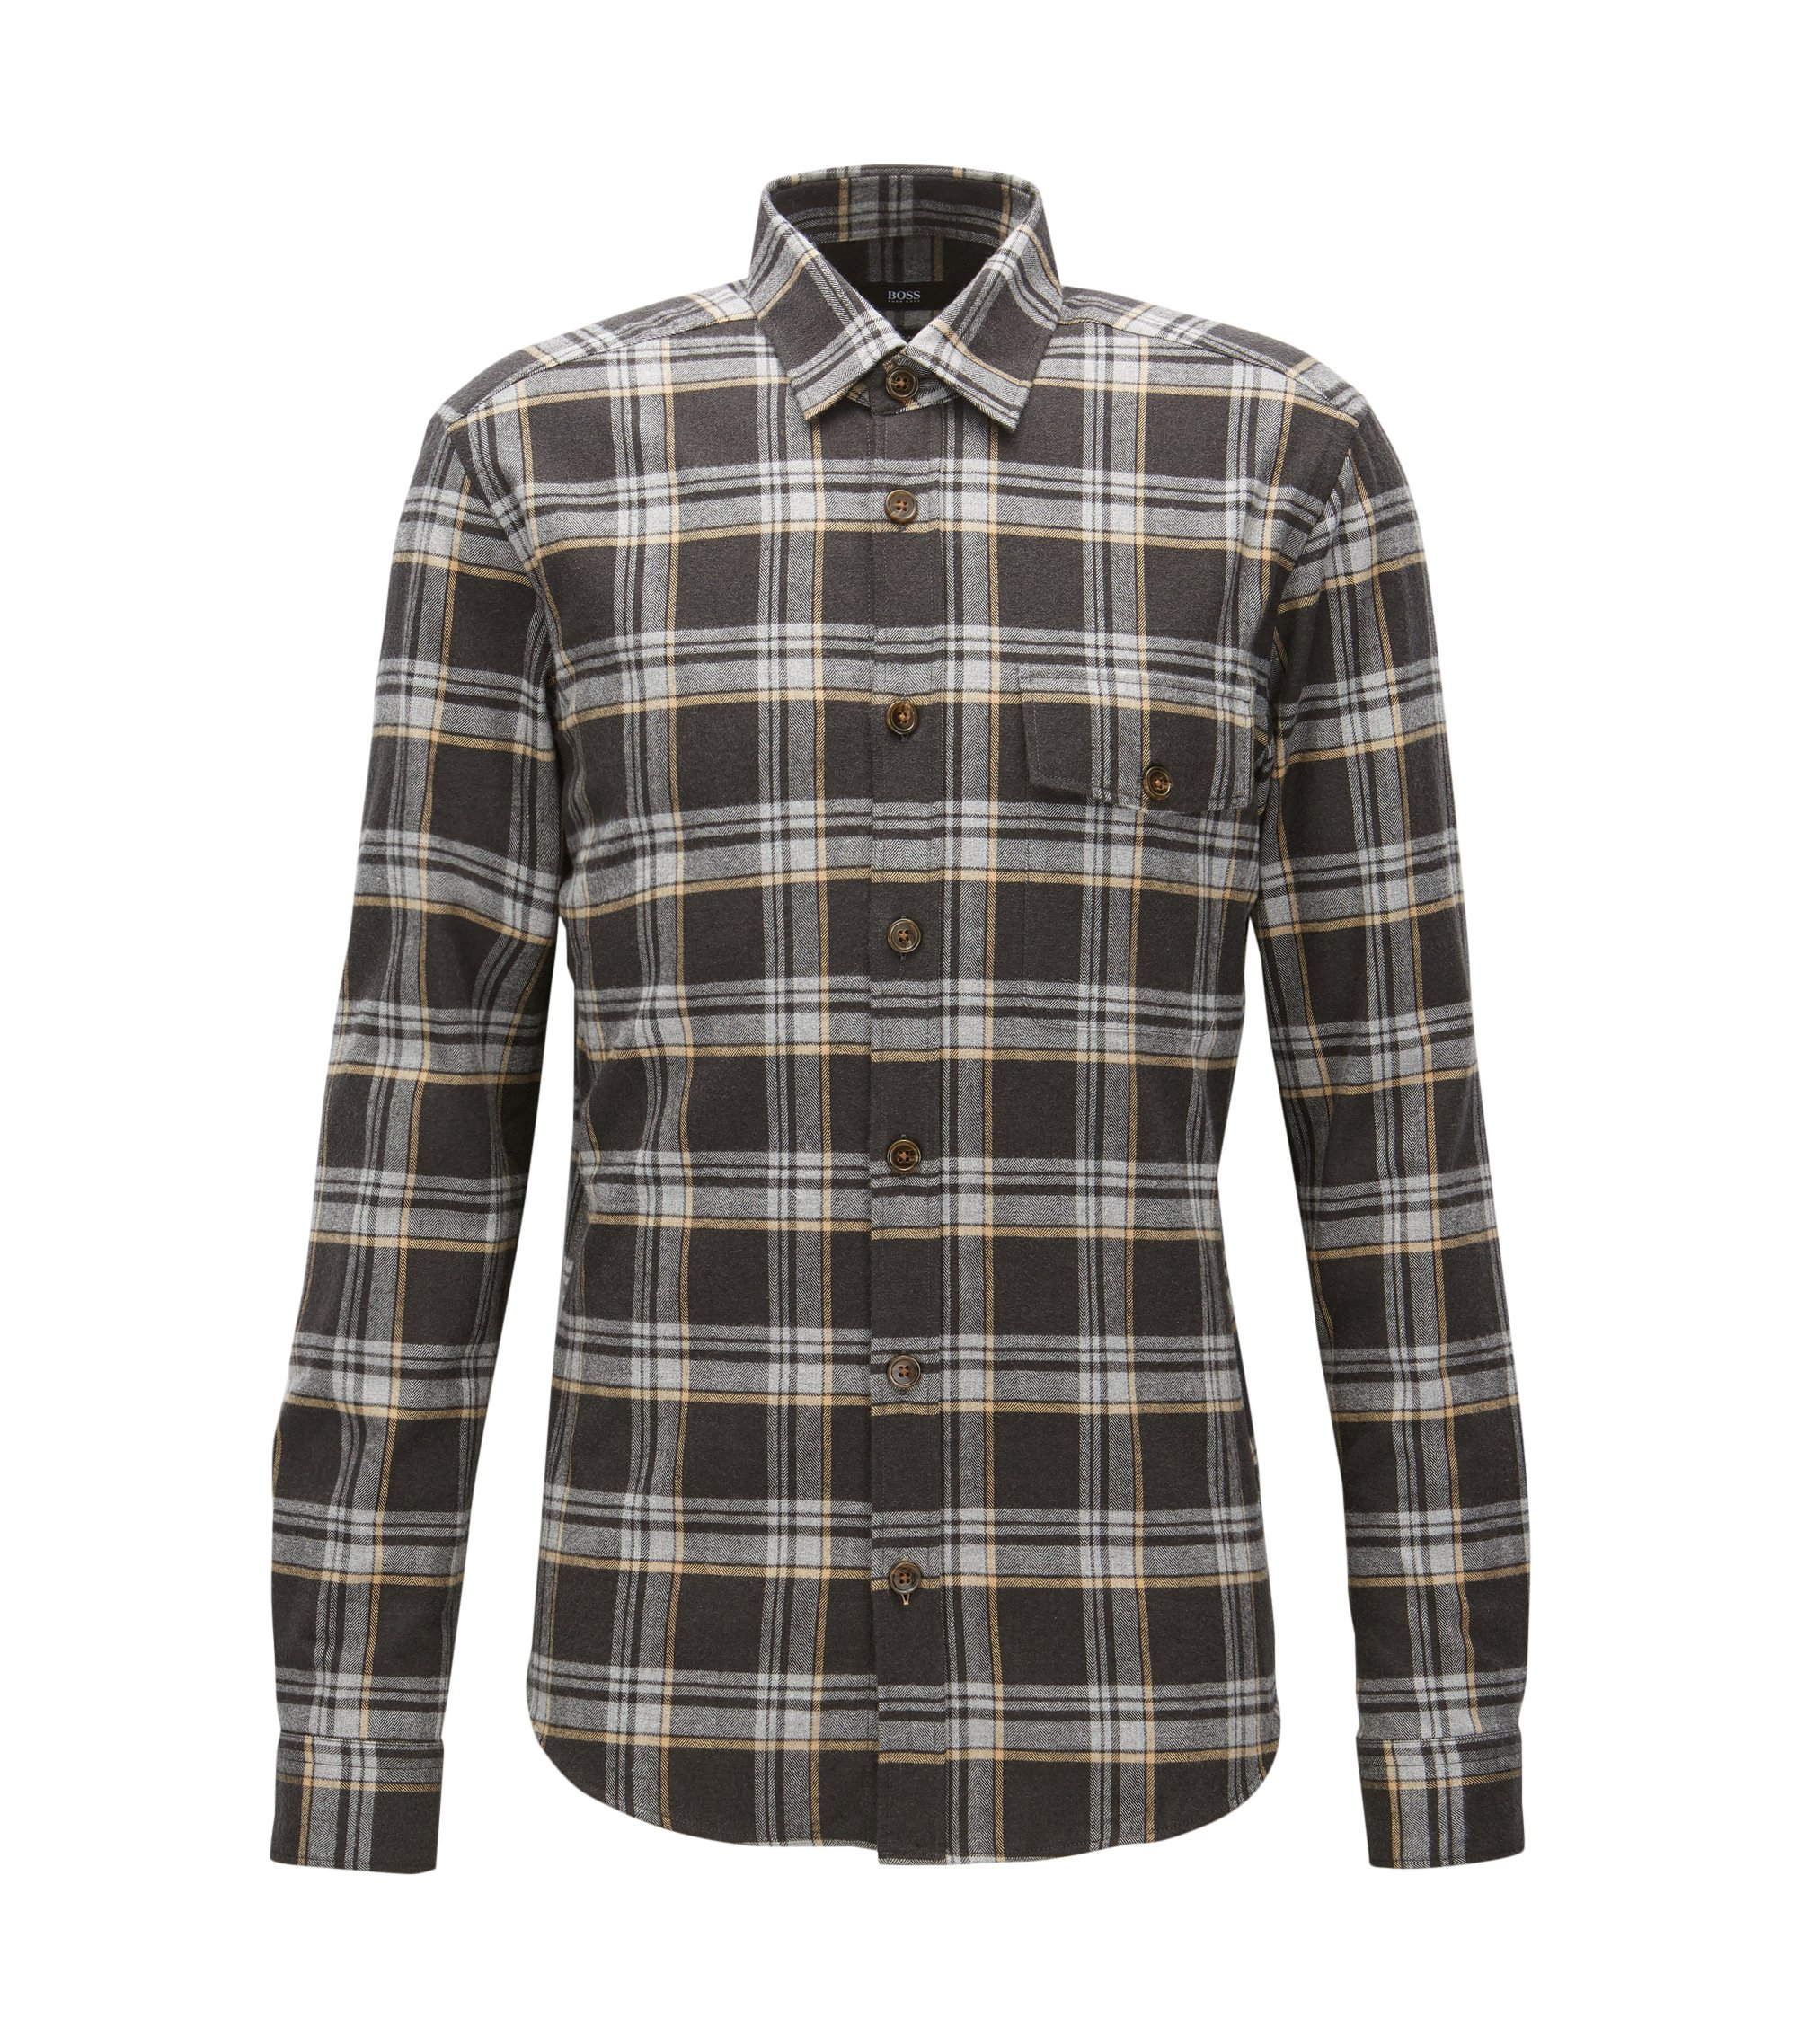 'Lalo' | Regular Fit, Plaid Cotton Button Down Shirt, Beige